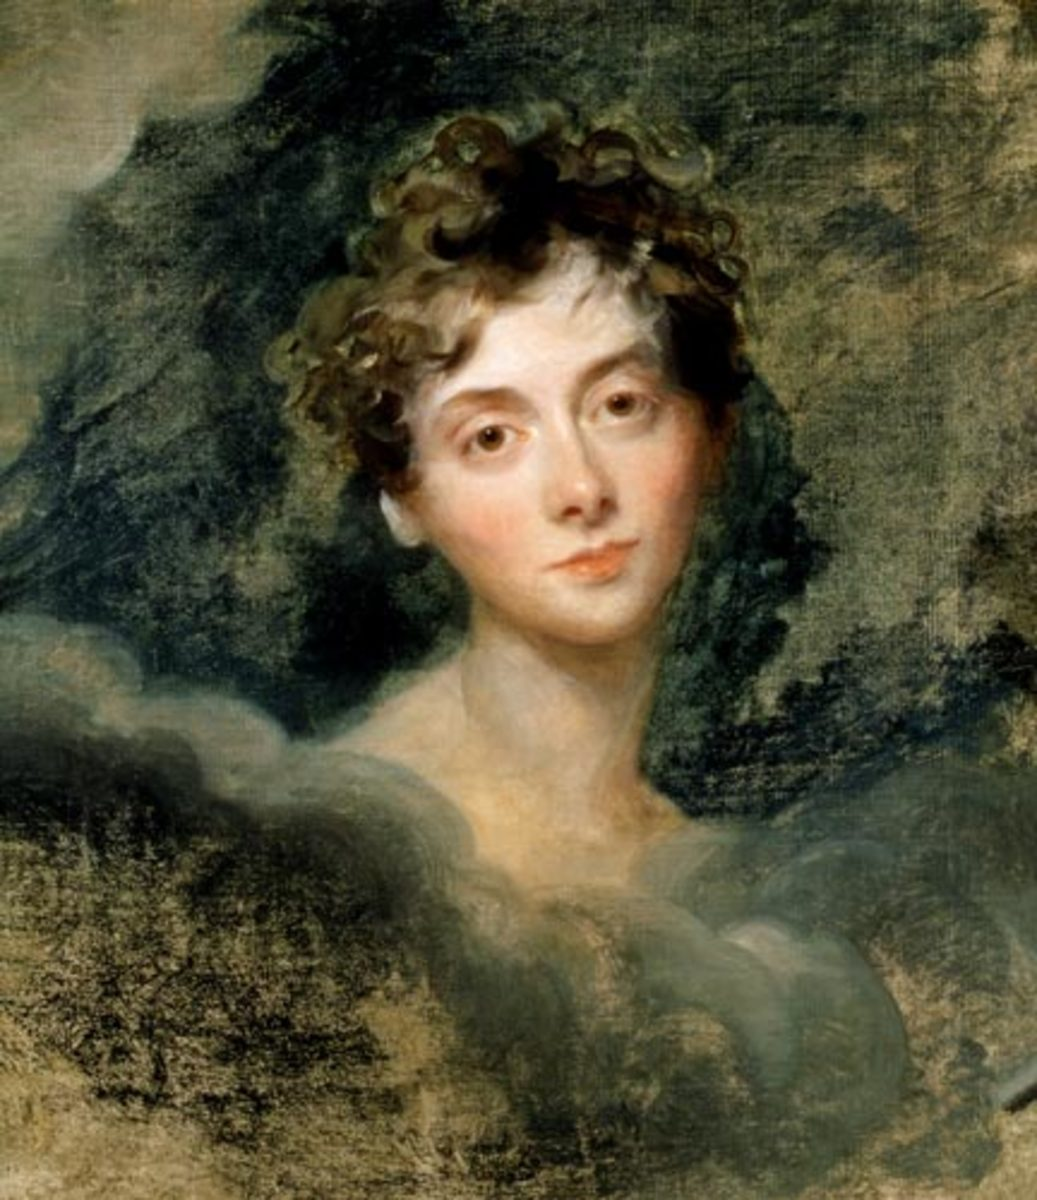 An 1805 portrait of Lady Caroline Lamb. You go girl!